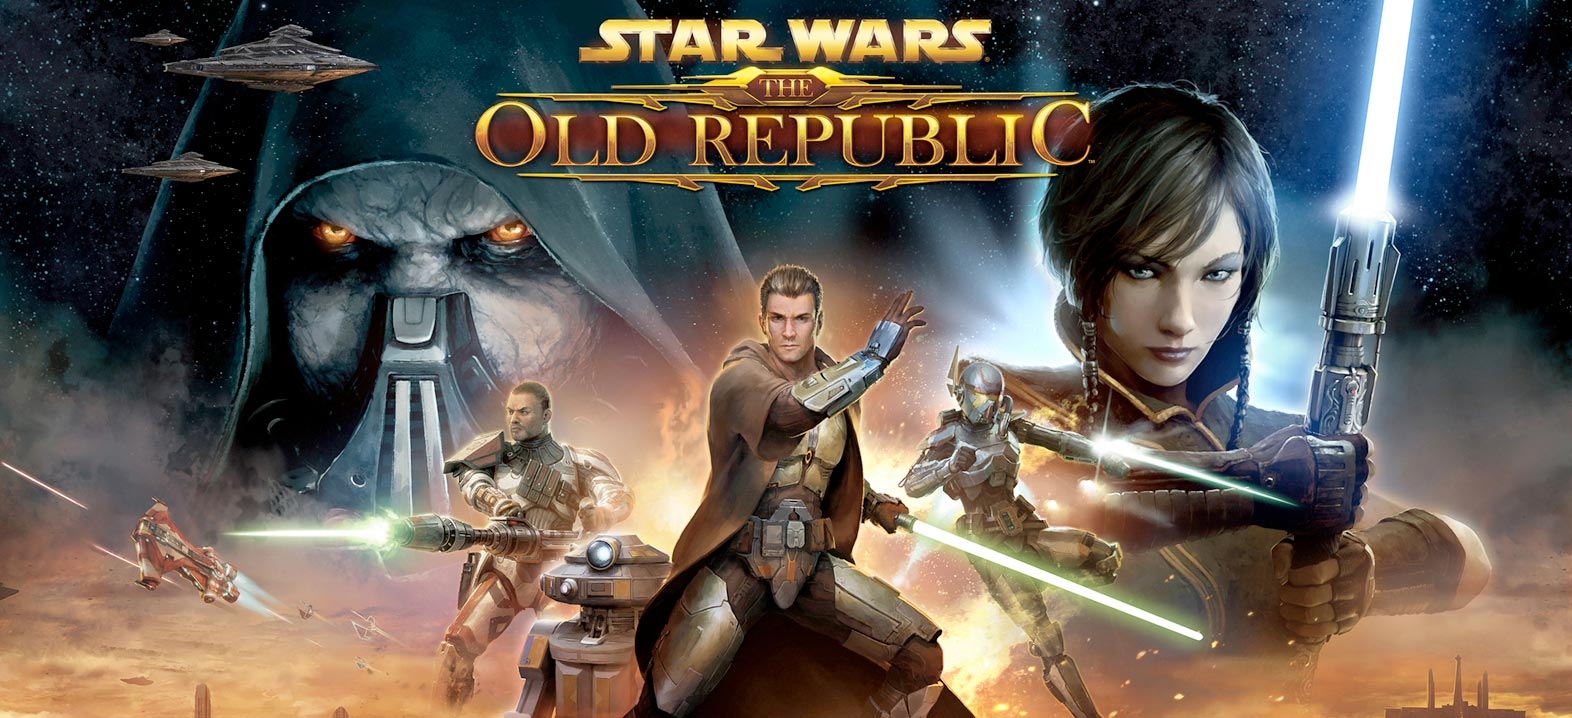 Rumor: 'Star Wars' Movies from 'Game of Thrones' Creators May Head to The Old Republic